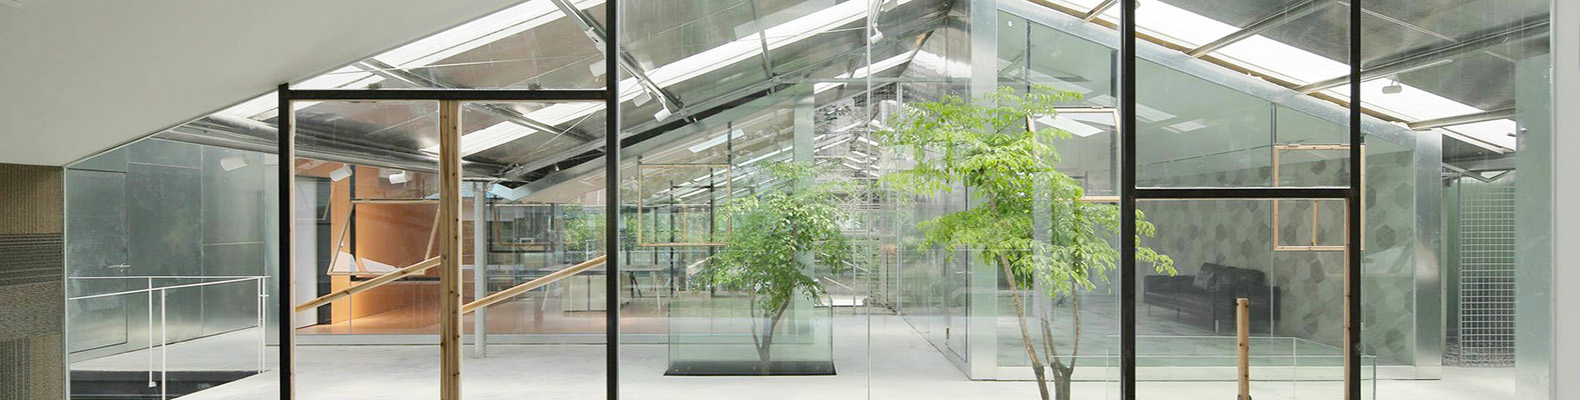 Abandoned greenhouse transformed into gorgeous glass office filled with trees